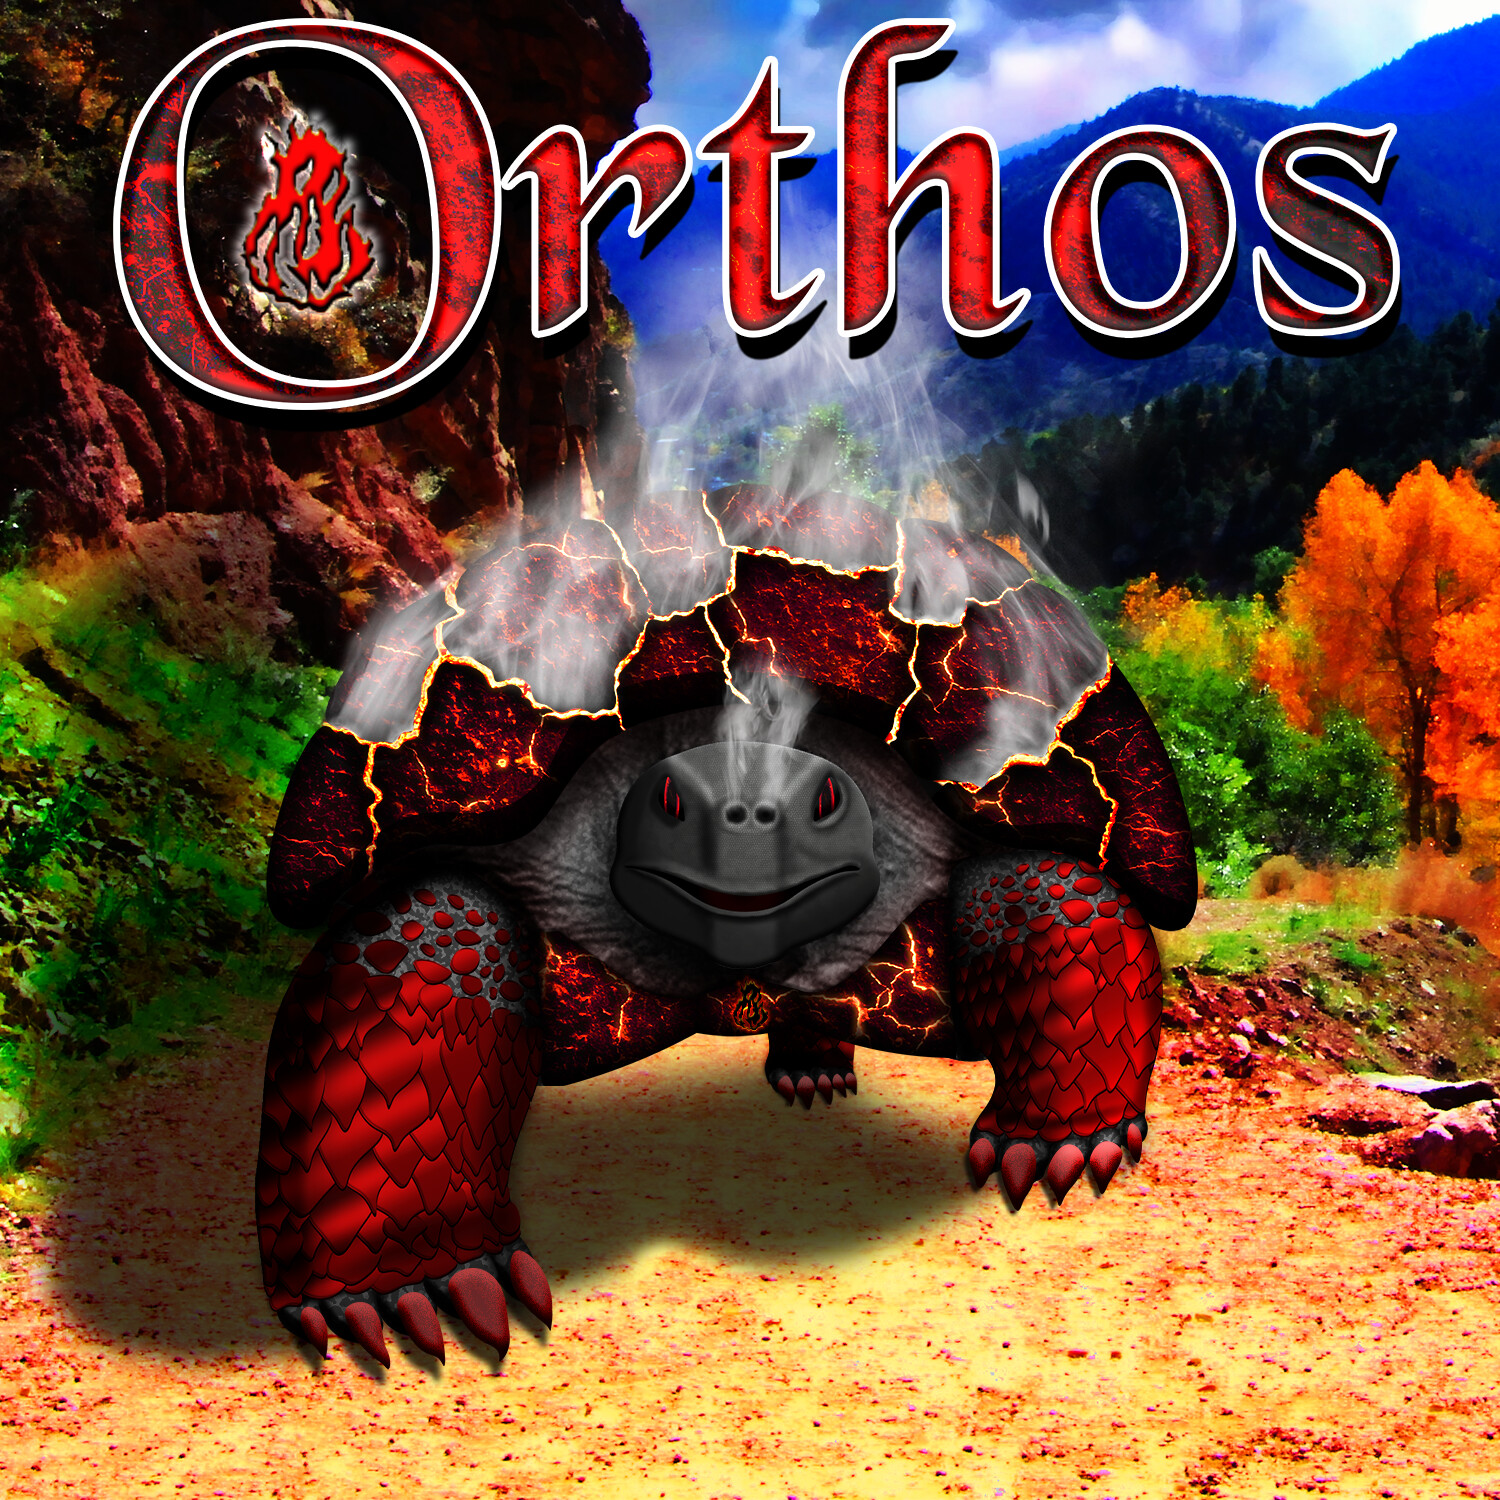 Orthos - The Dragon Turtle